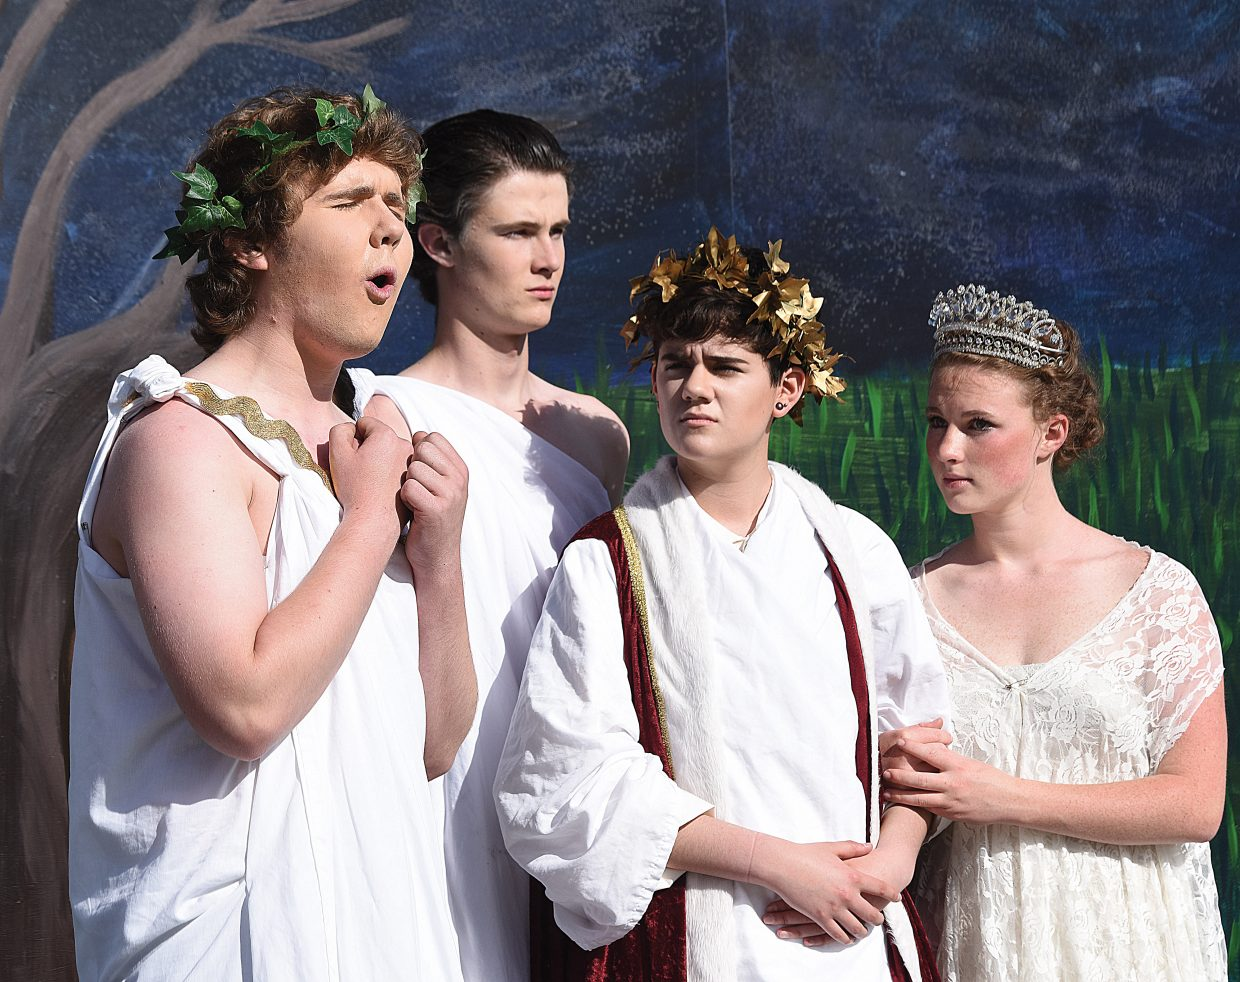 Tucker Sanford, who portrays Lysander in the Steamboat Springs High School's production of Midsummer Night's Dream, rehearses a scene on a stage set up in front of the Steamboat Springs High School. The show are scheduled for 5 p.m. Friday and Saturday evenings. There will be a show at noon Saturday.